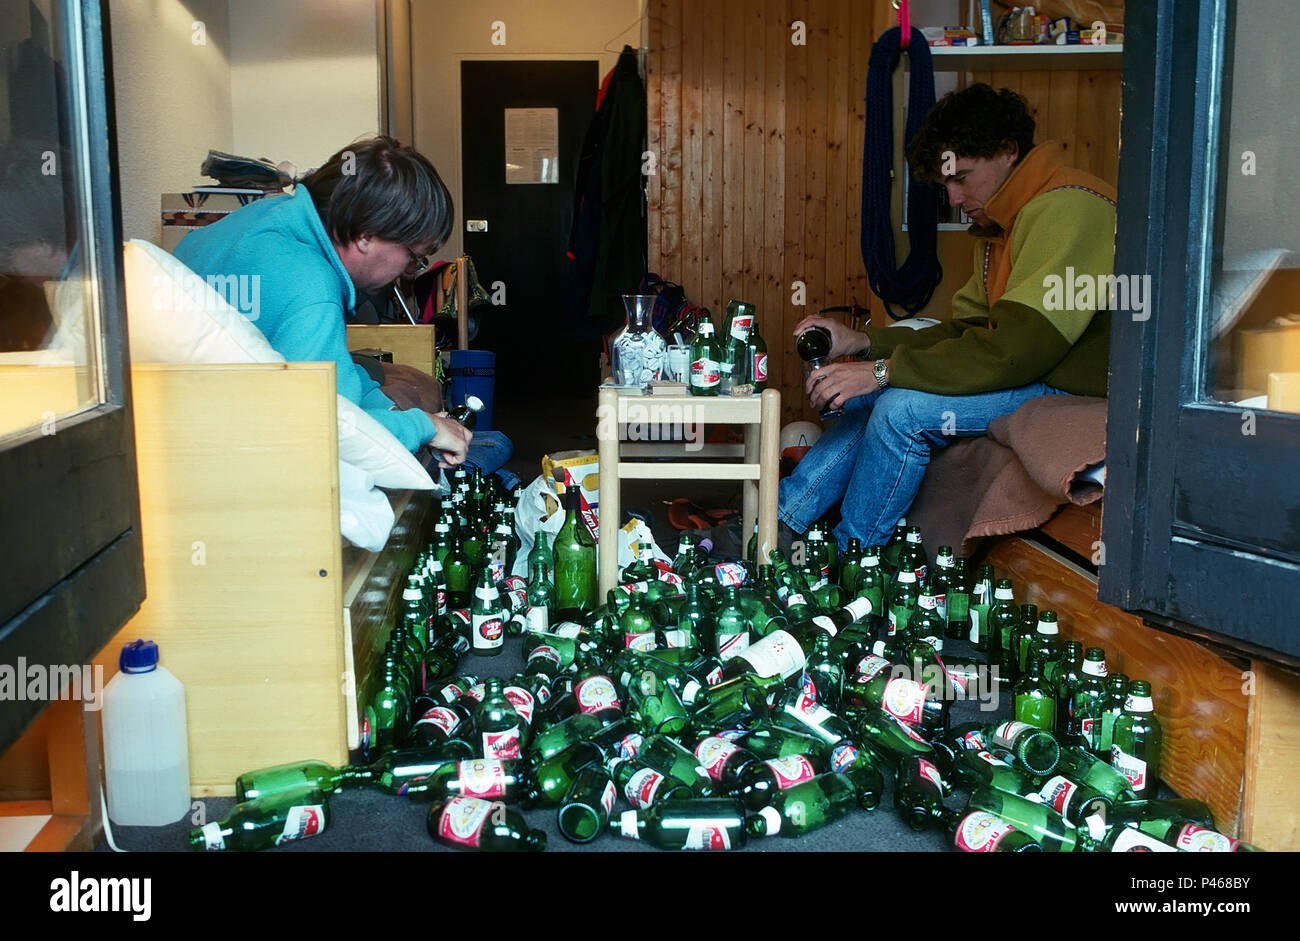 a-quiet-night-in-two-young-men-opening-a-beer-bottle-each-surrounded-by-empty-bottles-P468BY.jpg